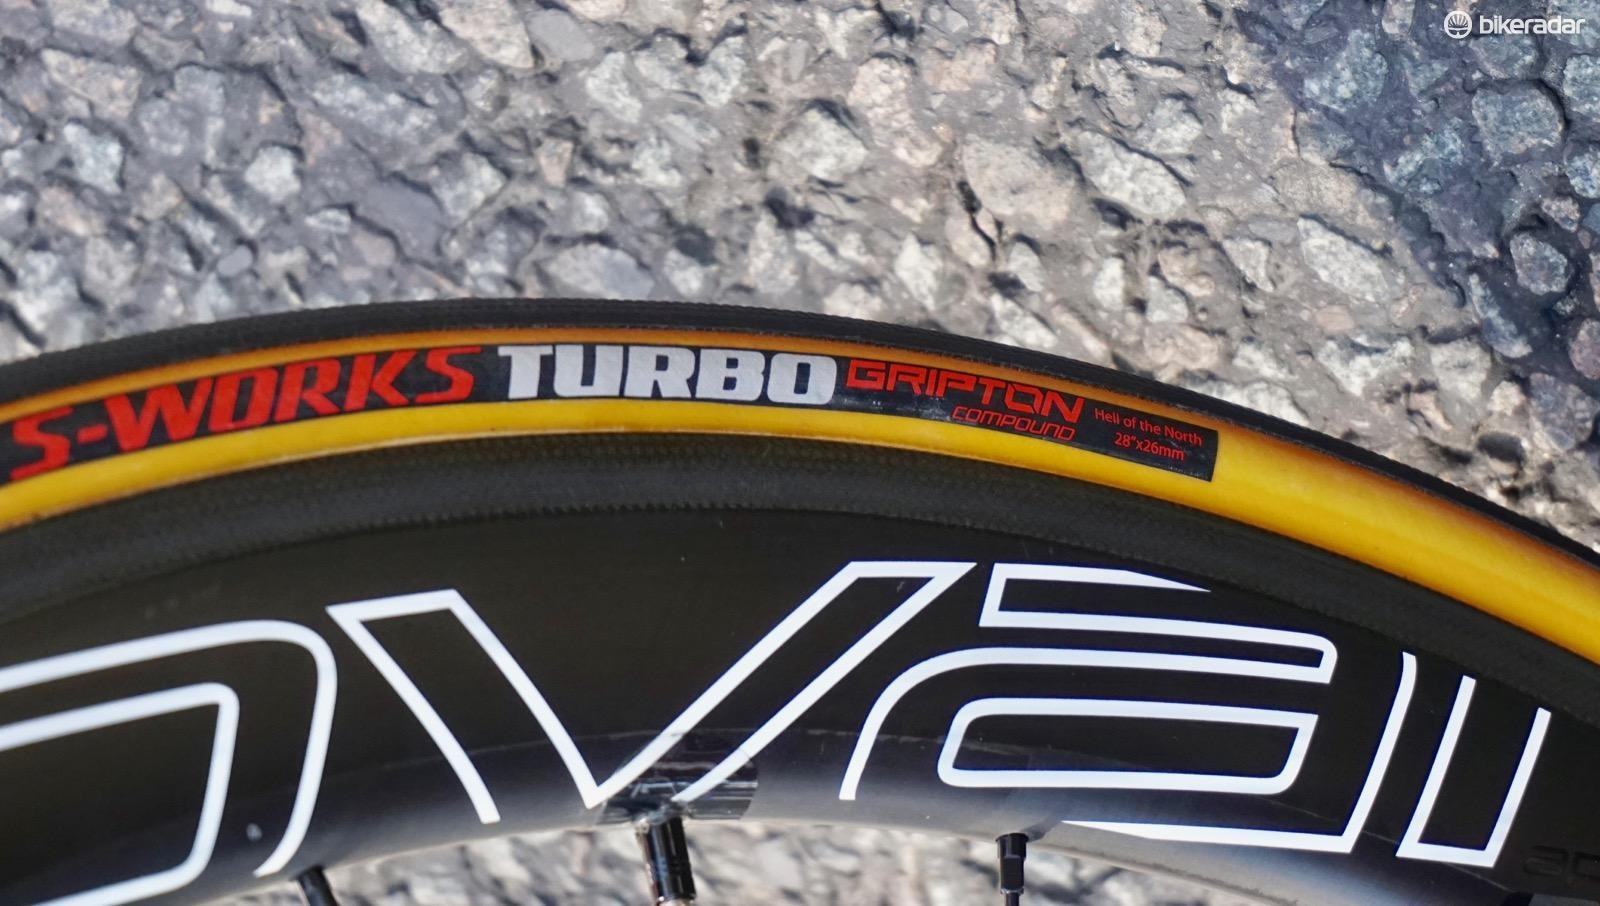 Marcel Kittel has won three stages of the 2017 Tour de France on 26mm S-Works Turbo Hell of the North tubulars. The rest of his team is on Specialized's S-Works Allround 3 tubulars, also in 26mm